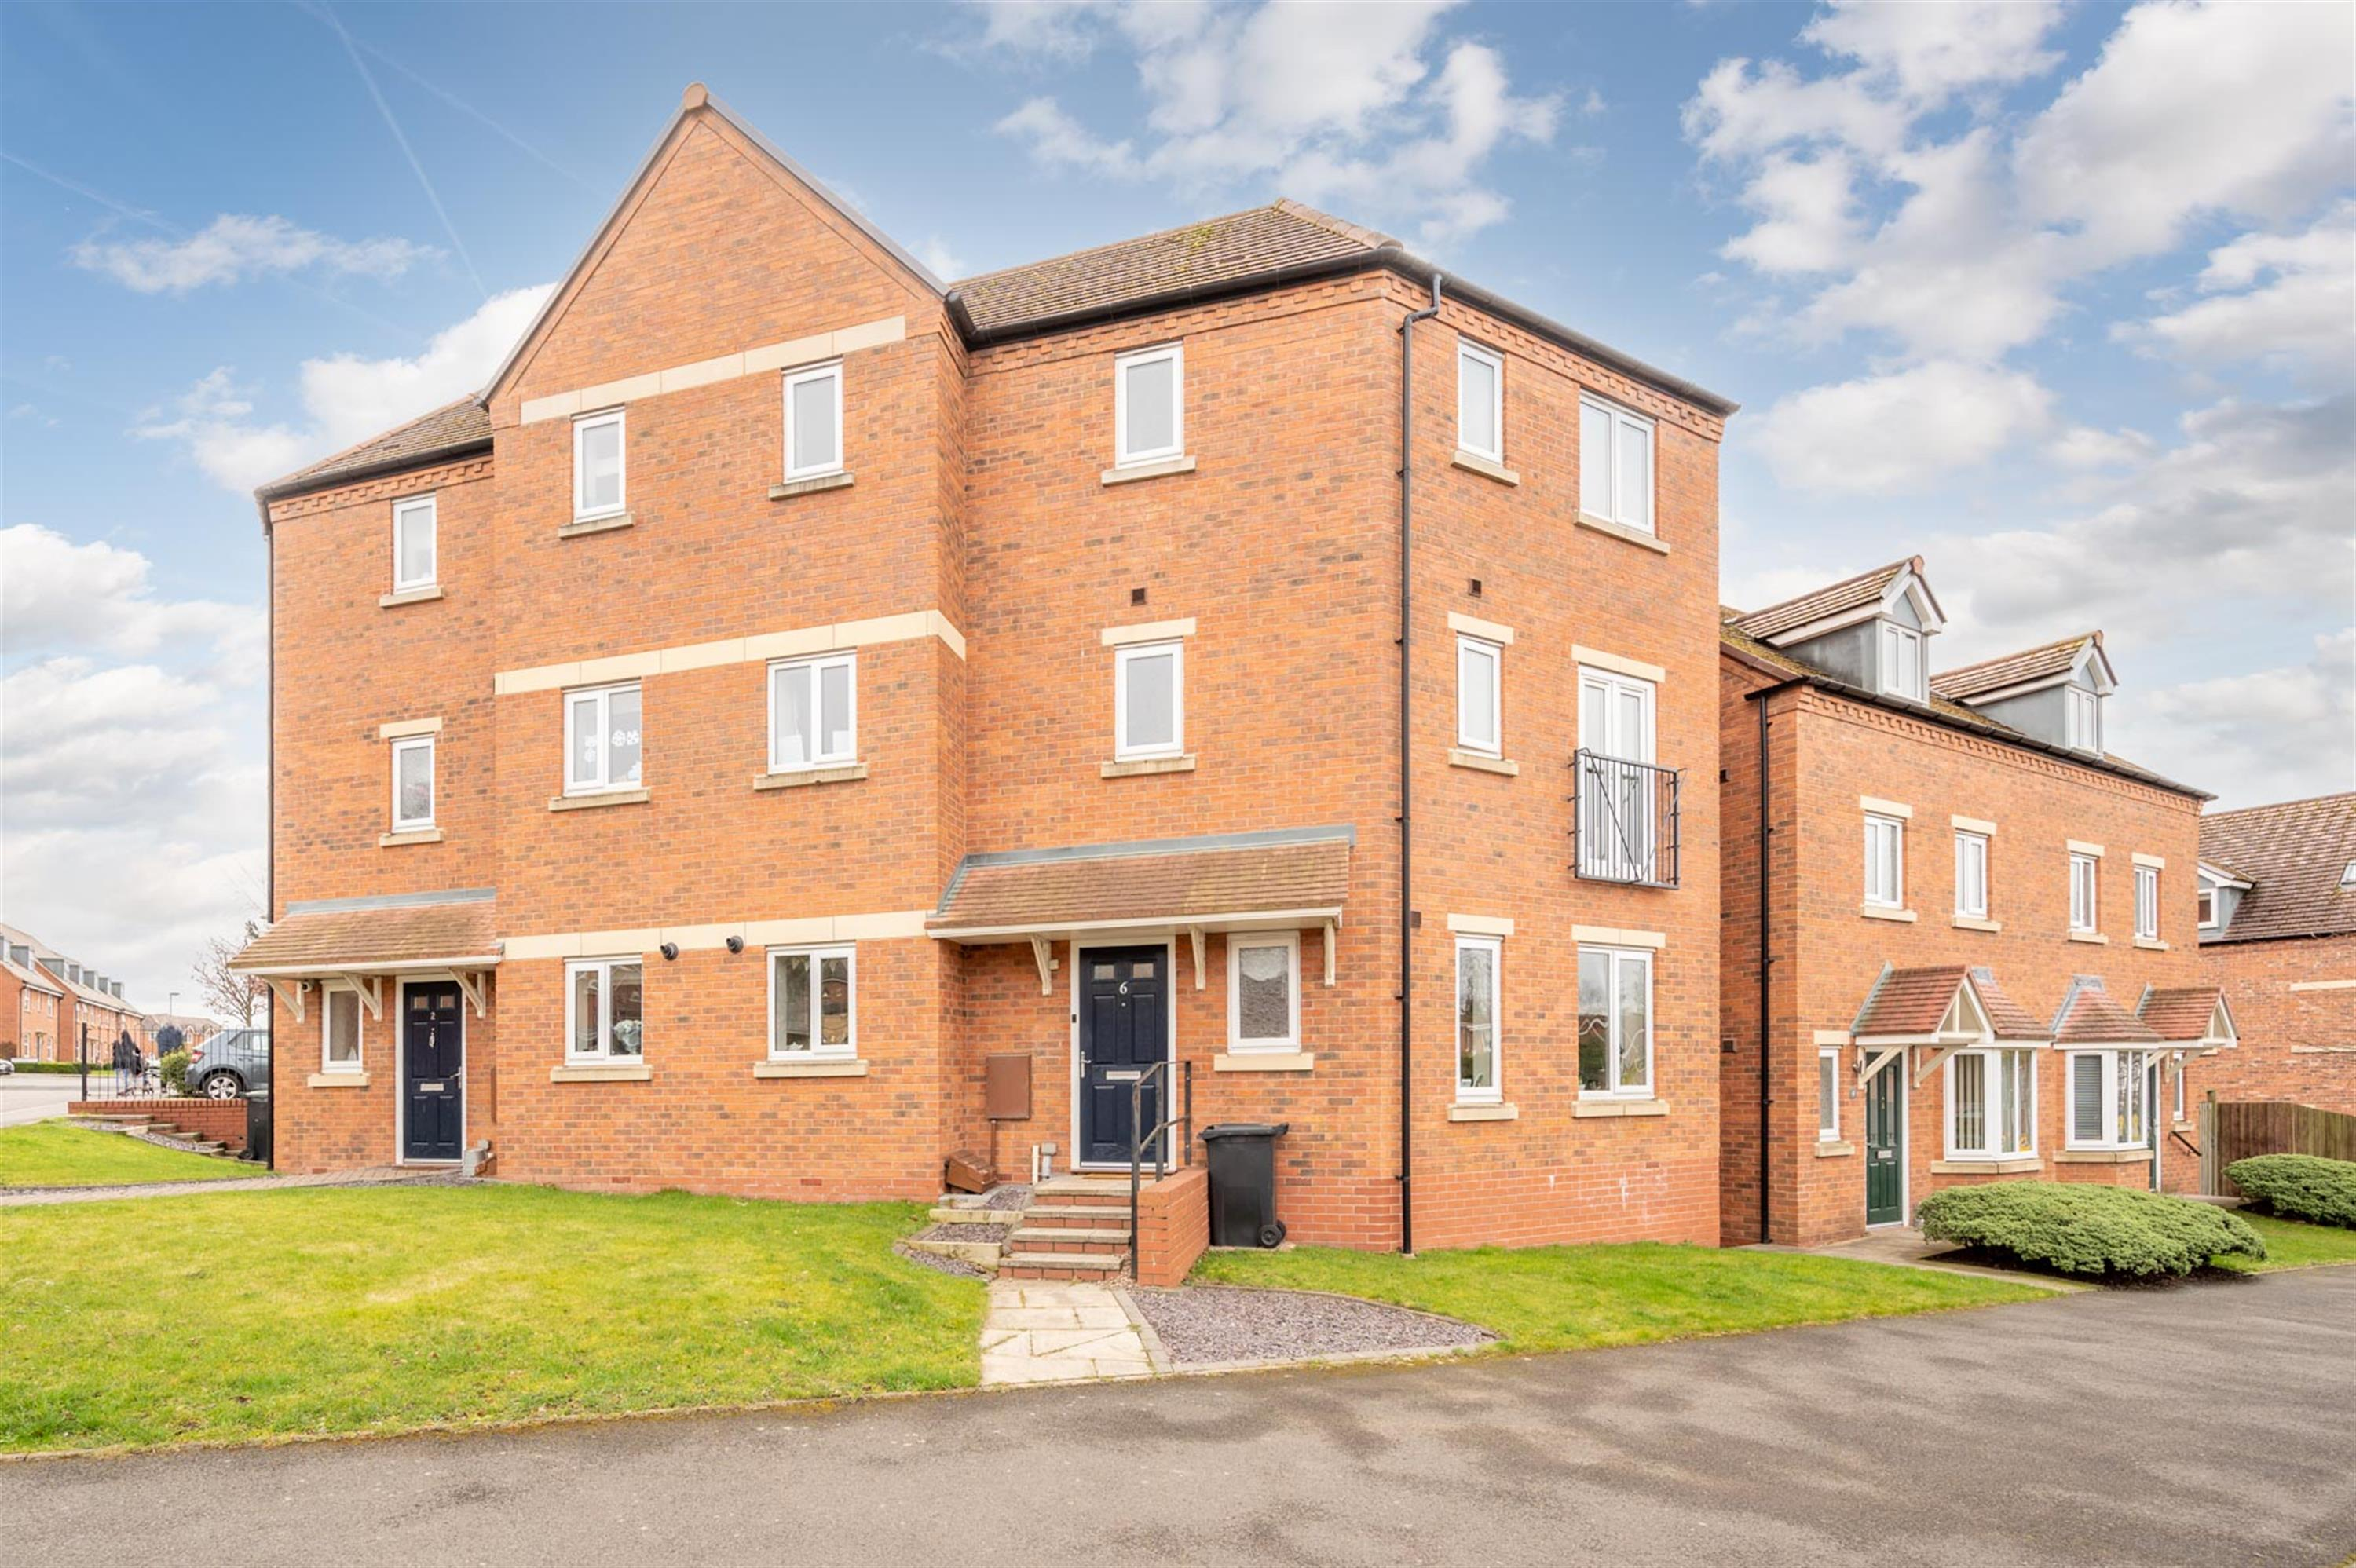 Auckland Road, Wordsley, DY8 5BF